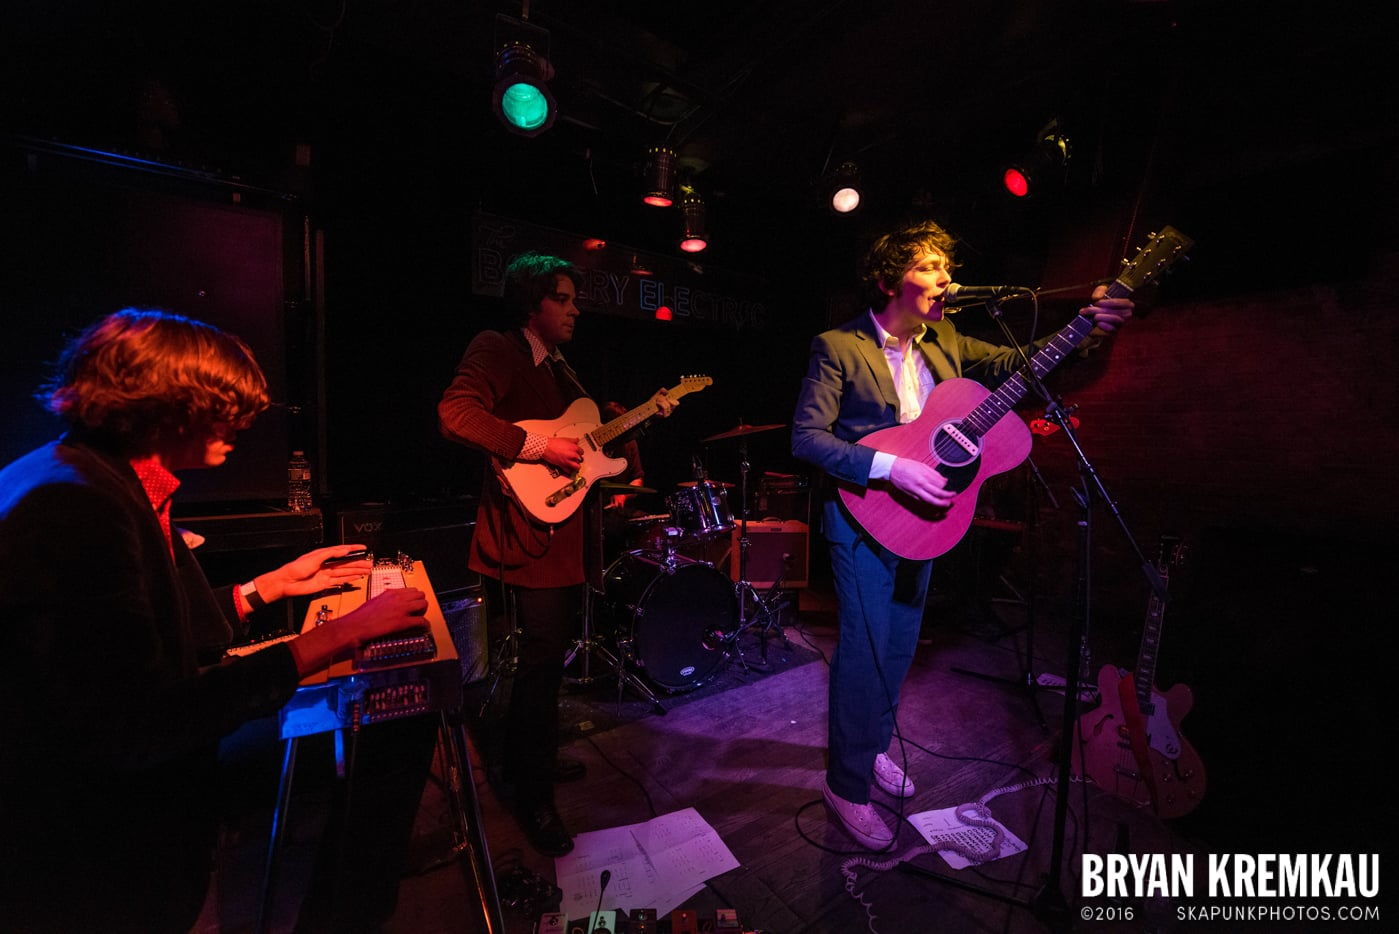 Trapper Schoepp & The Shades @ Bowery Electric, NYC - 11.20.14 (28)